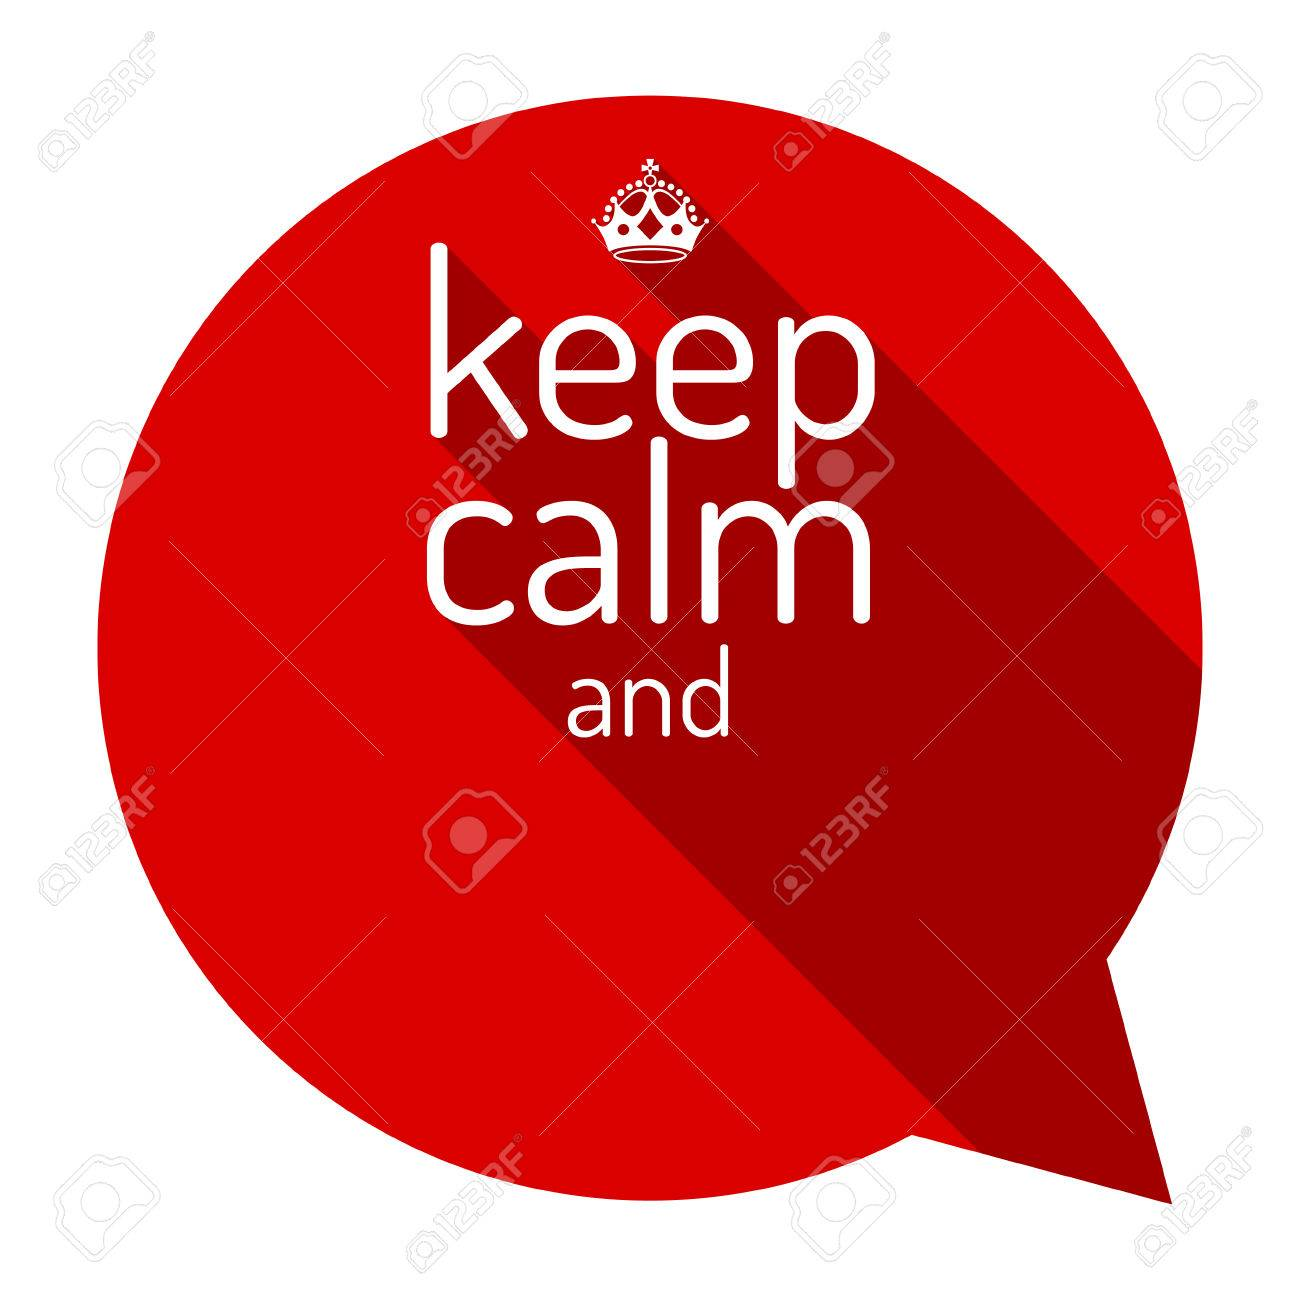 Keep calm red talk bubble motivational quote and keep calm crown keep calm red talk bubble motivational quote and keep calm crown empty template pronofoot35fo Gallery